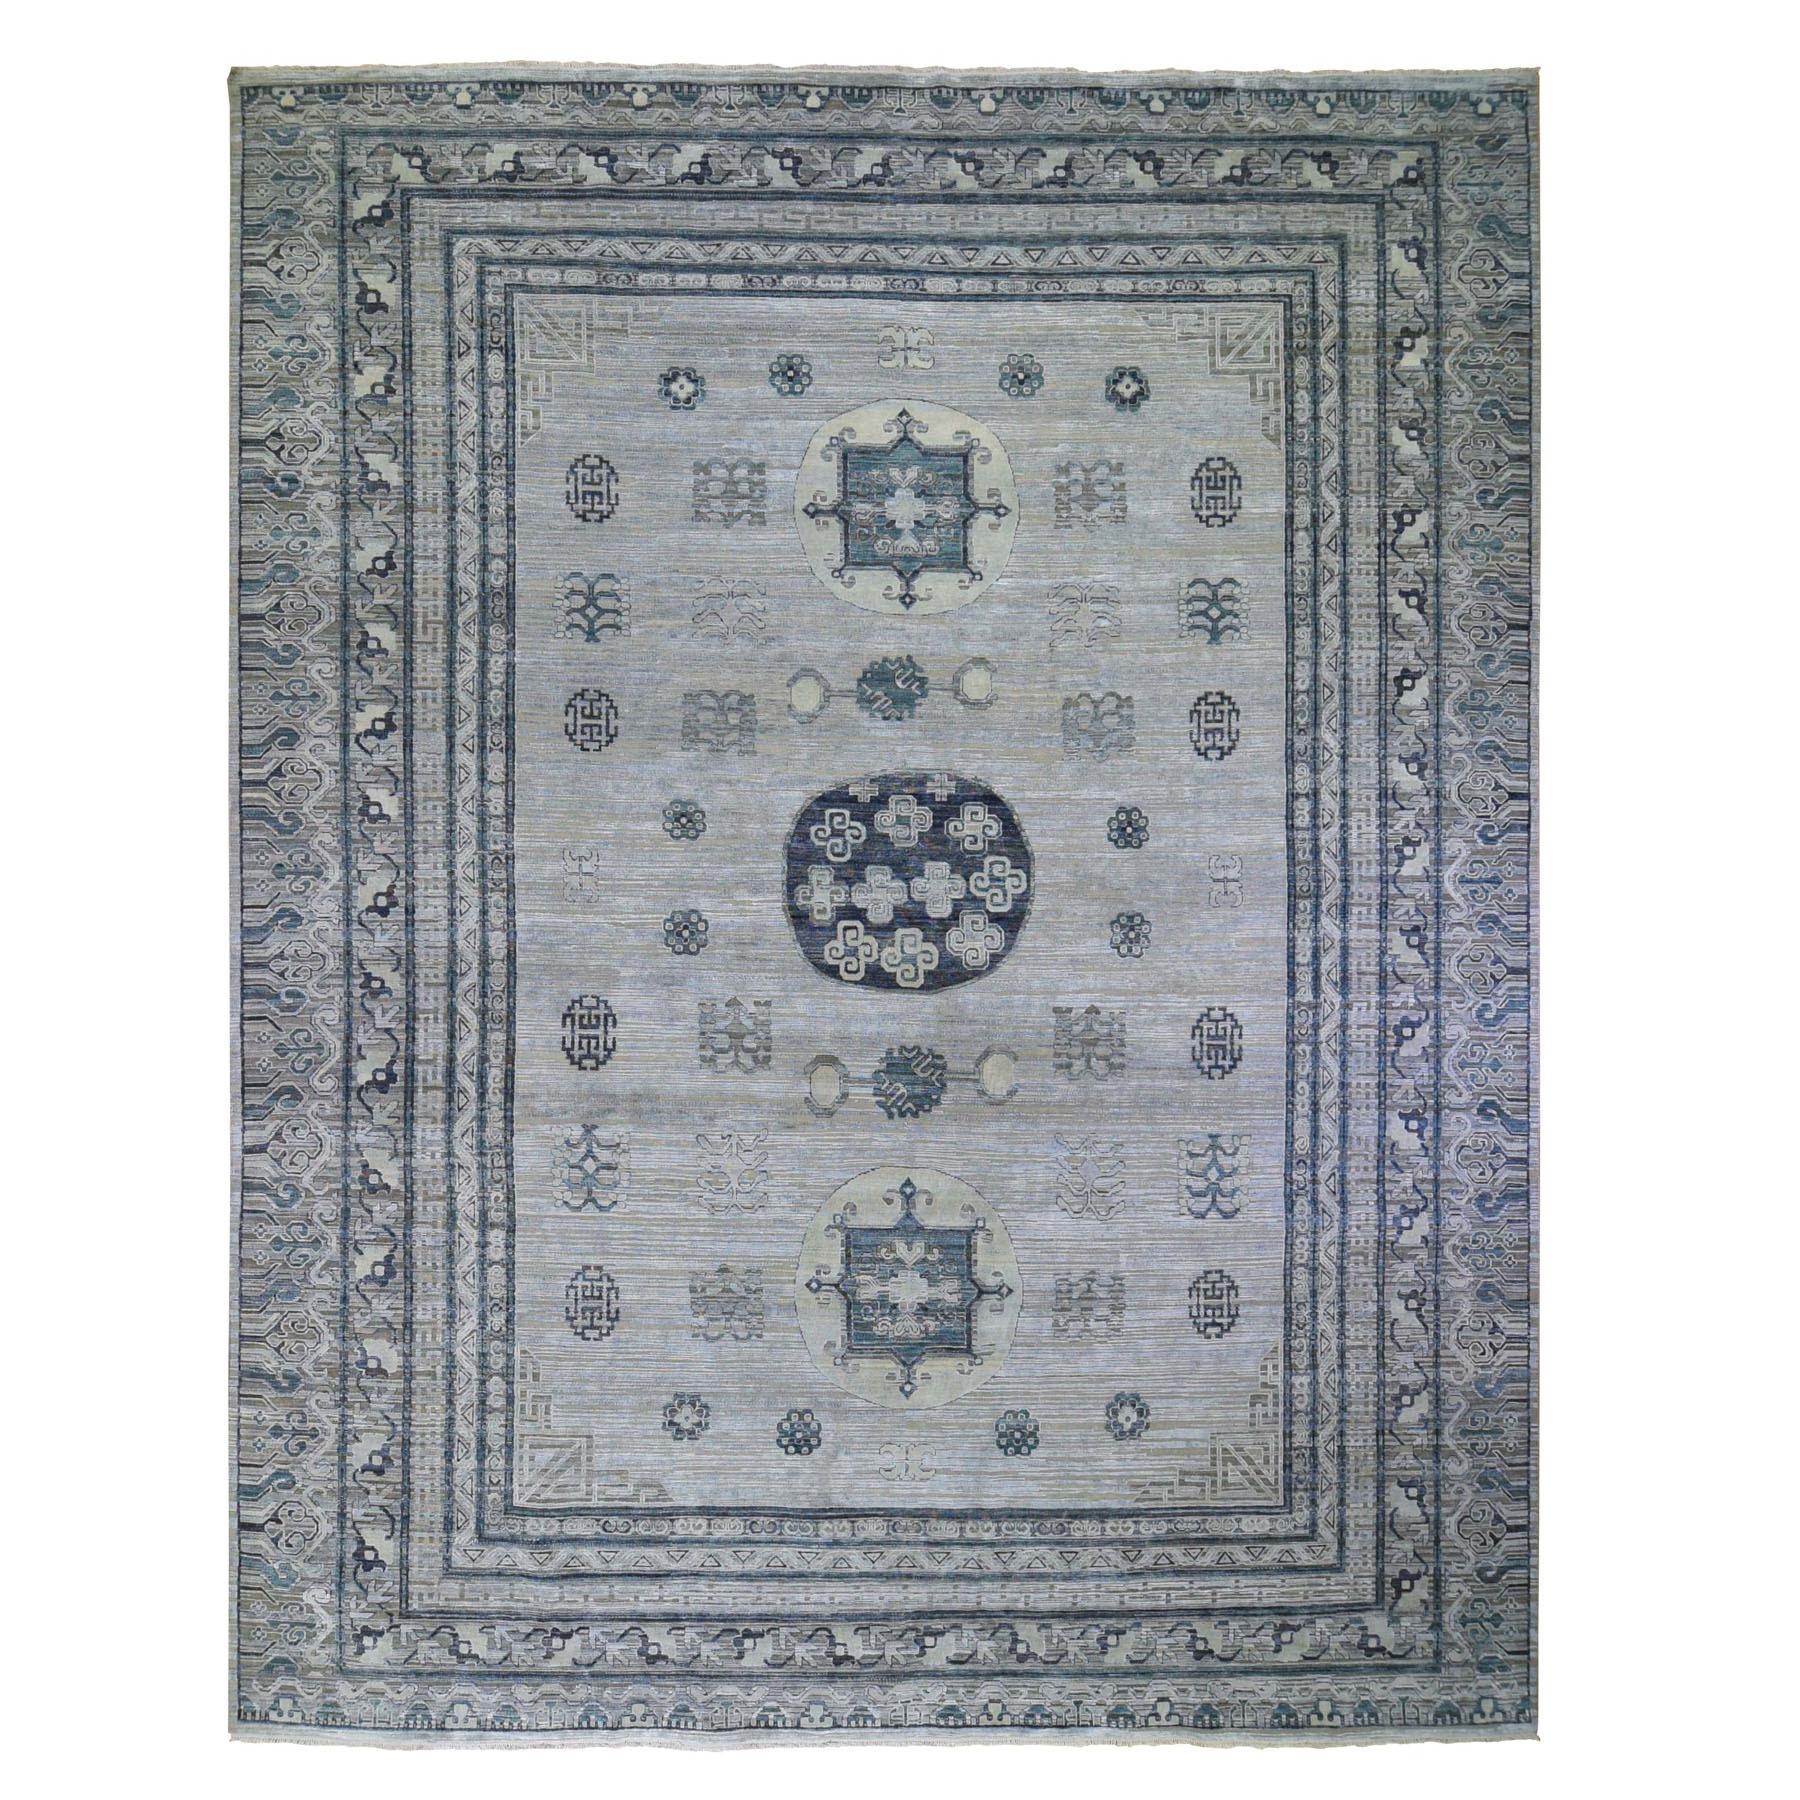 12'X15' Oversized Silver-Blue Khotan Design Pure Silk And Textured Wool Hand Knotted Oriental Rug moad9c8a